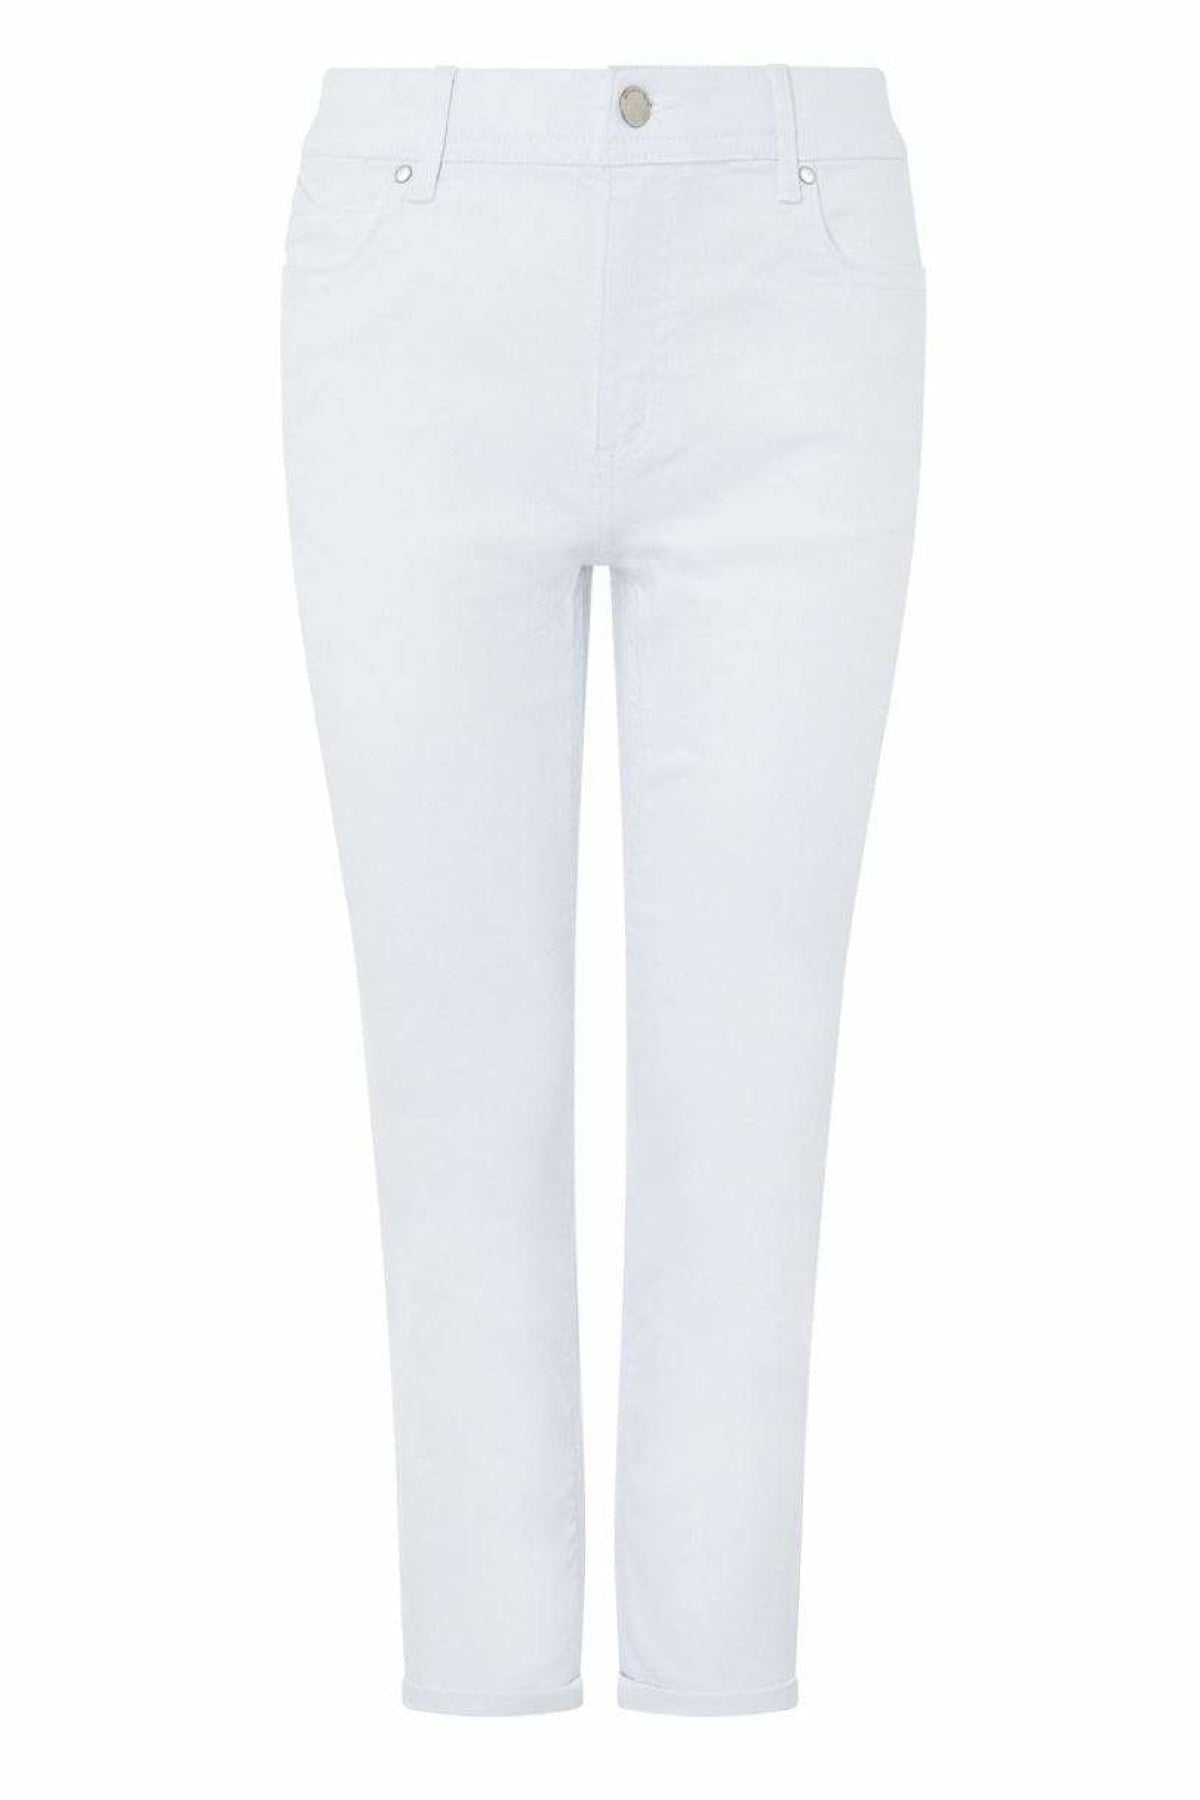 Monsoon Ex Monsoon Monsoon 'Idabella' Capri Jeans | Secret Label